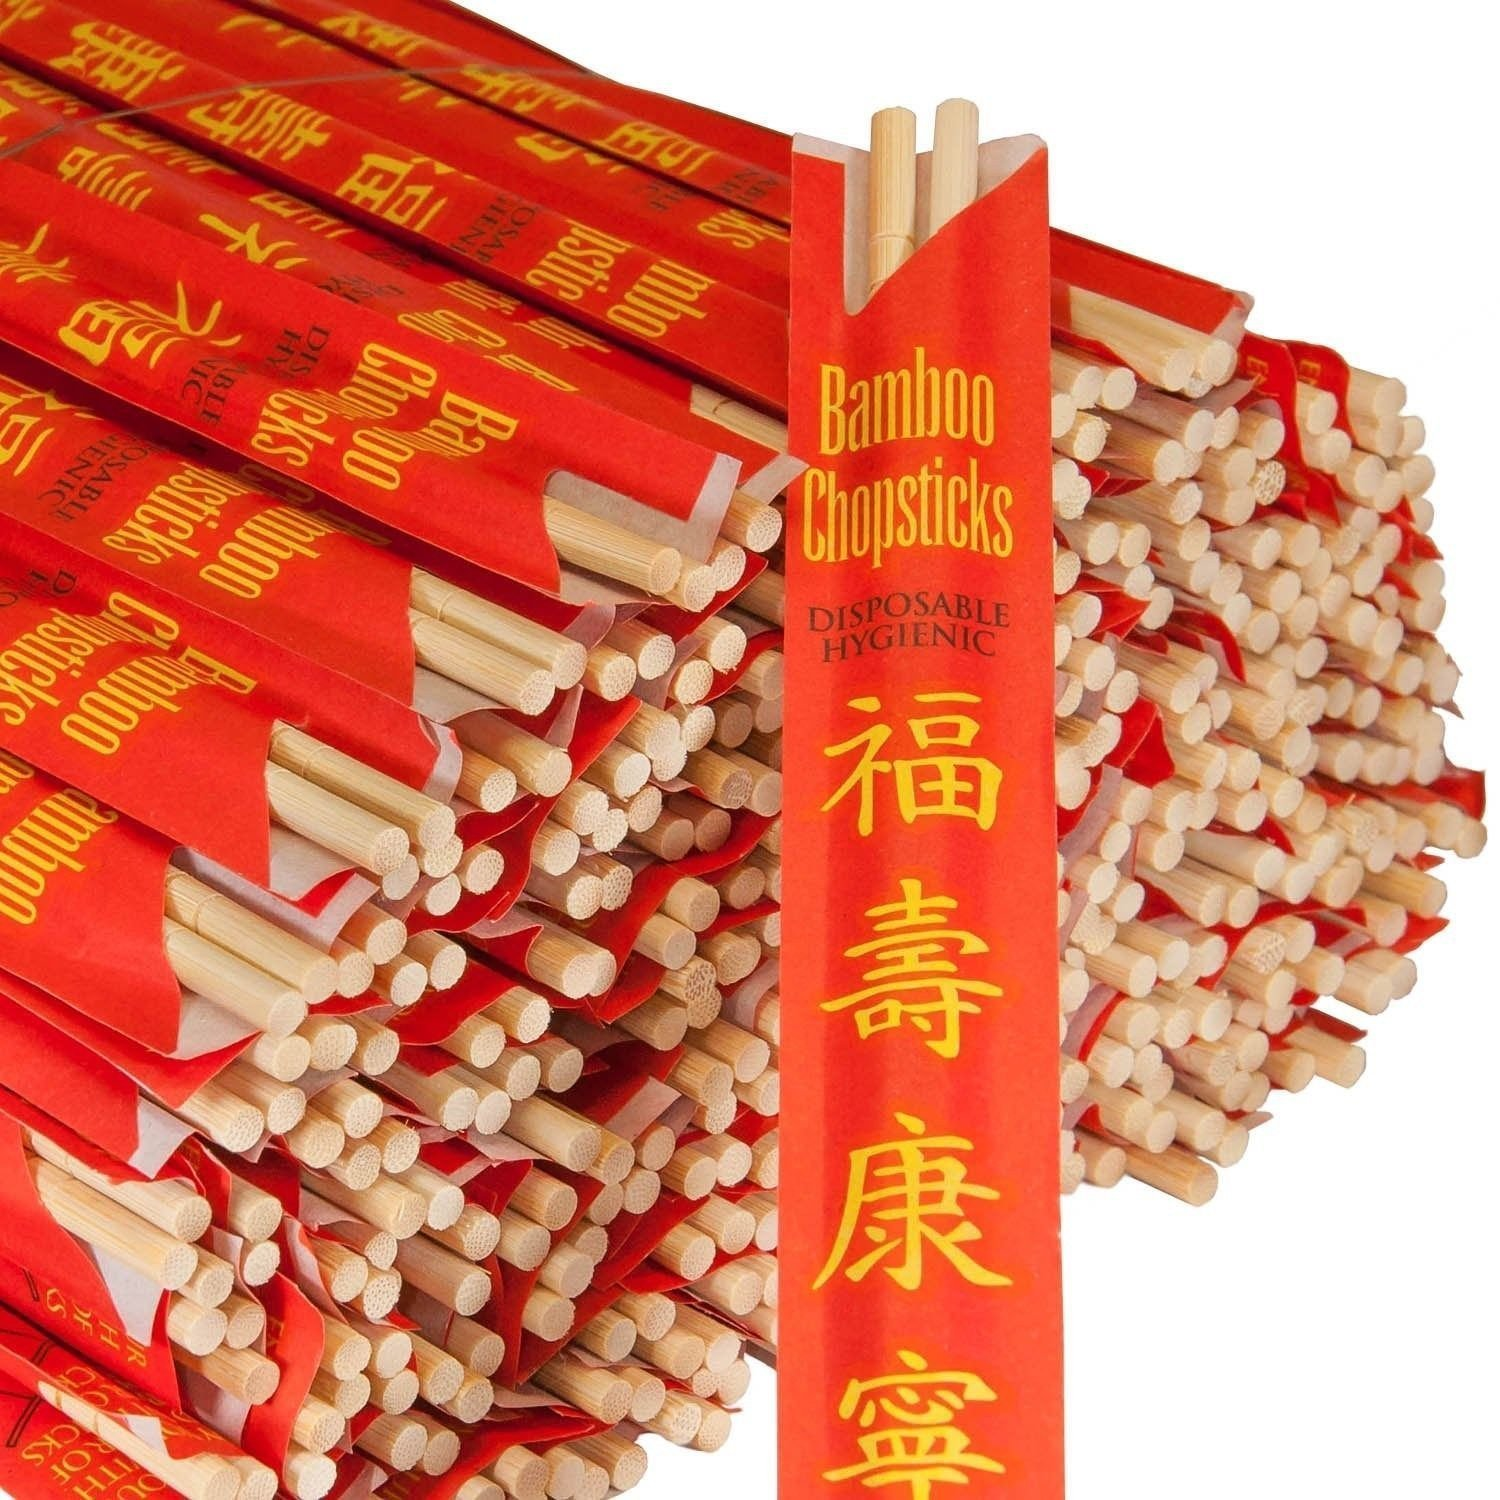 Bag Of 600 Pairs Royal Premium Disposable Bamboo Chopsticks, 9'' Sleeved and Separated, UV Treated, Bag of (600)